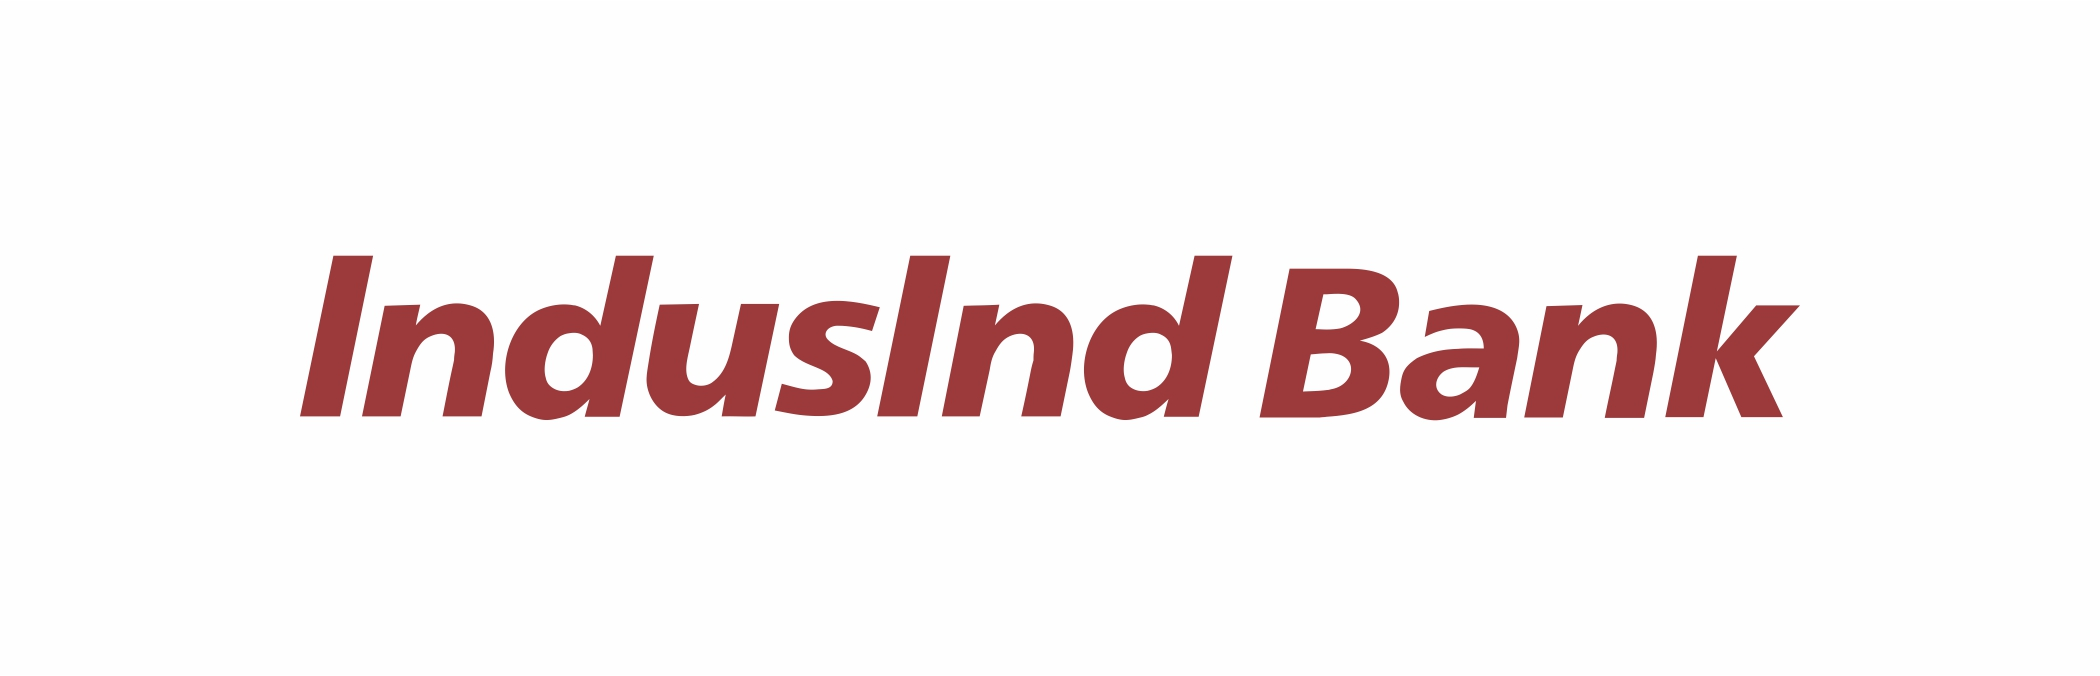 IndusInd Bank,FORT,Mumbai - logo